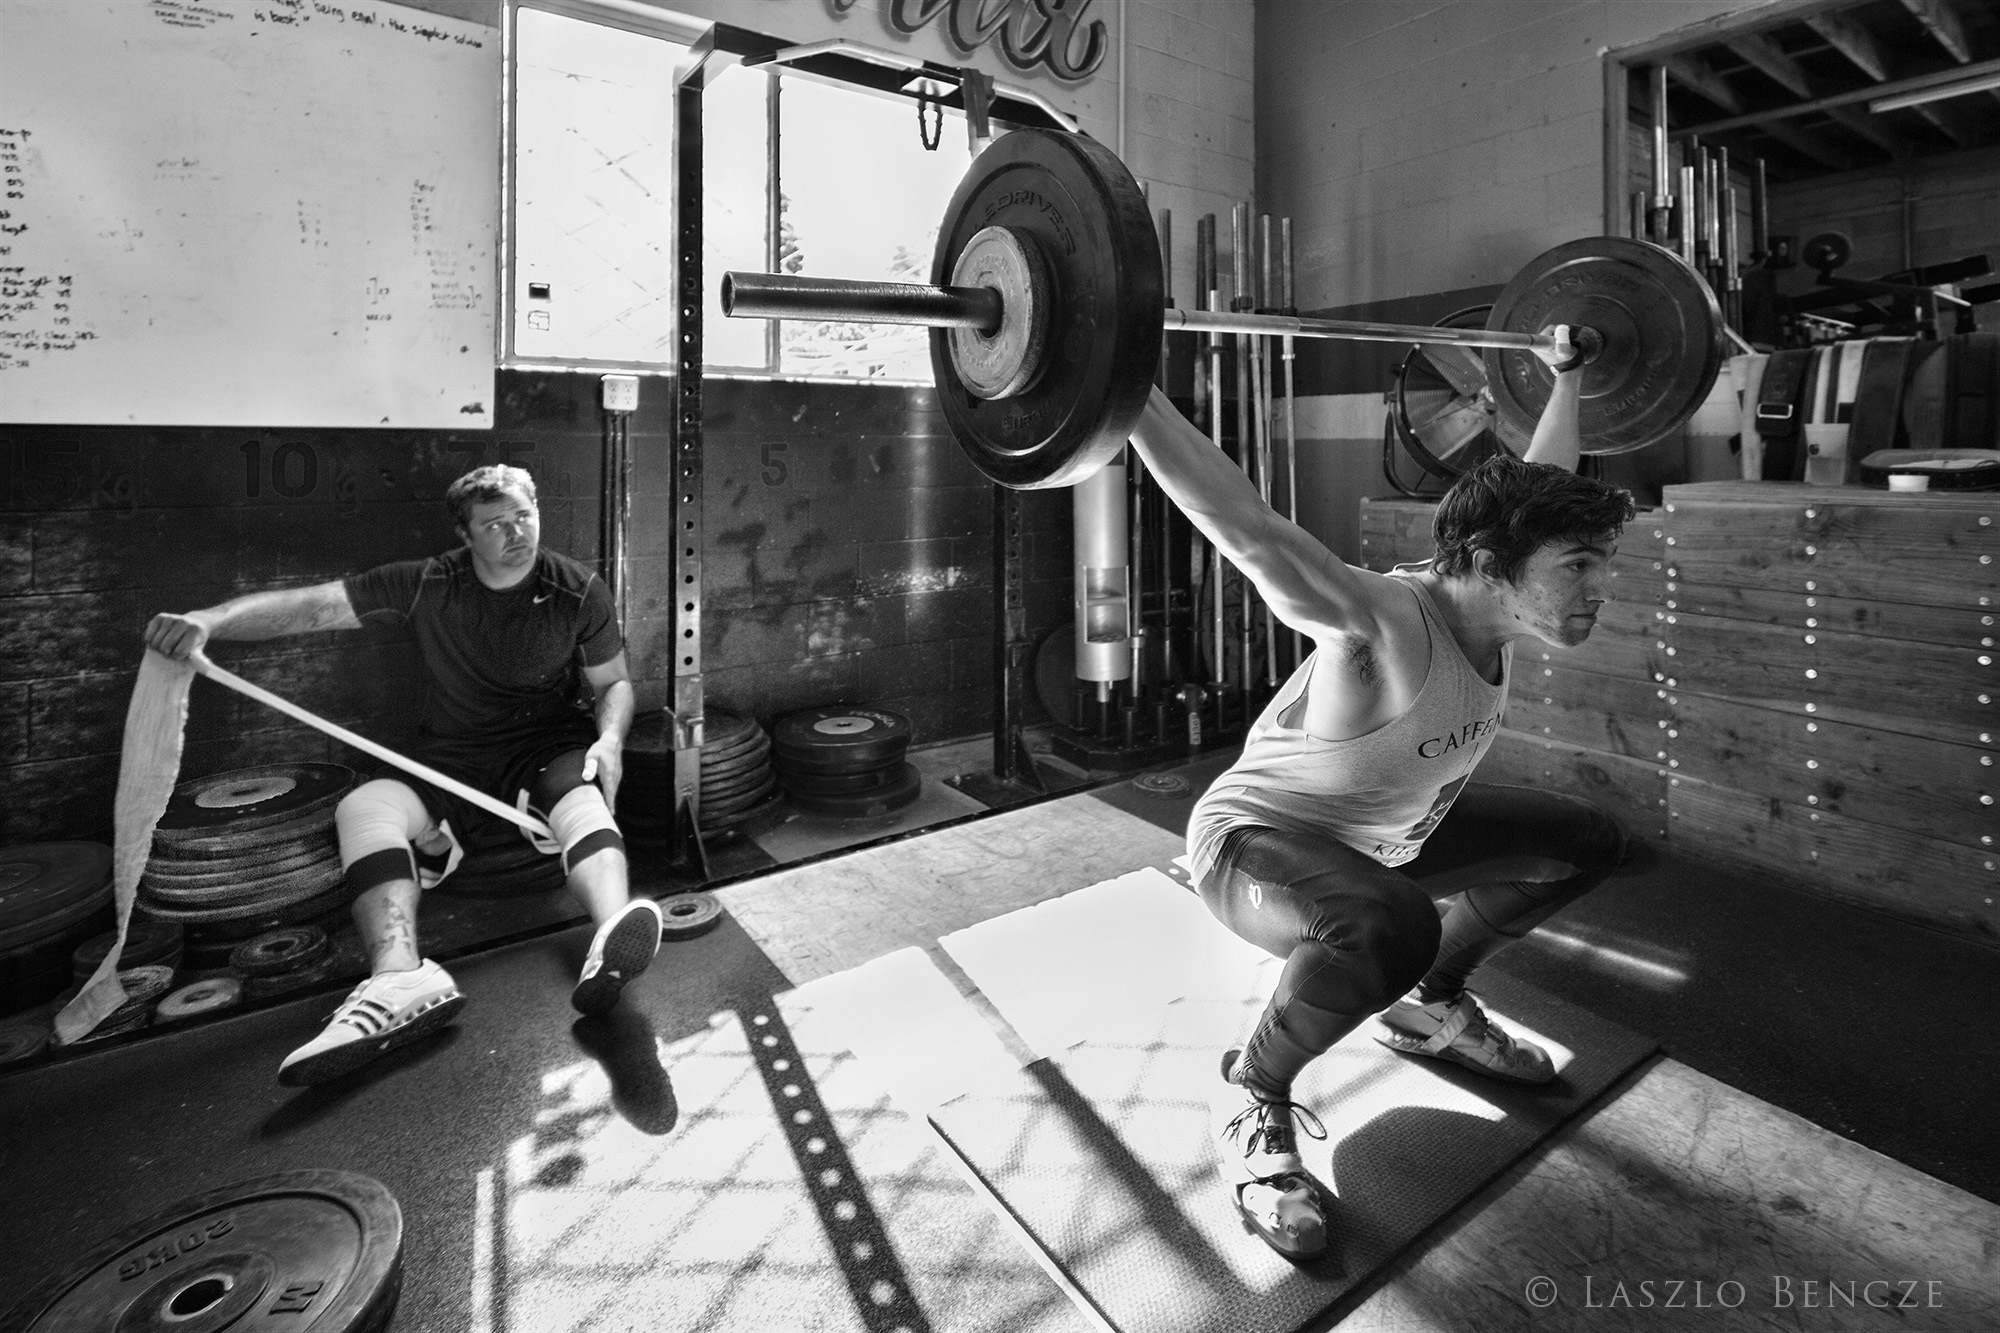 Weightlifting #1 by Laszlo Bencze